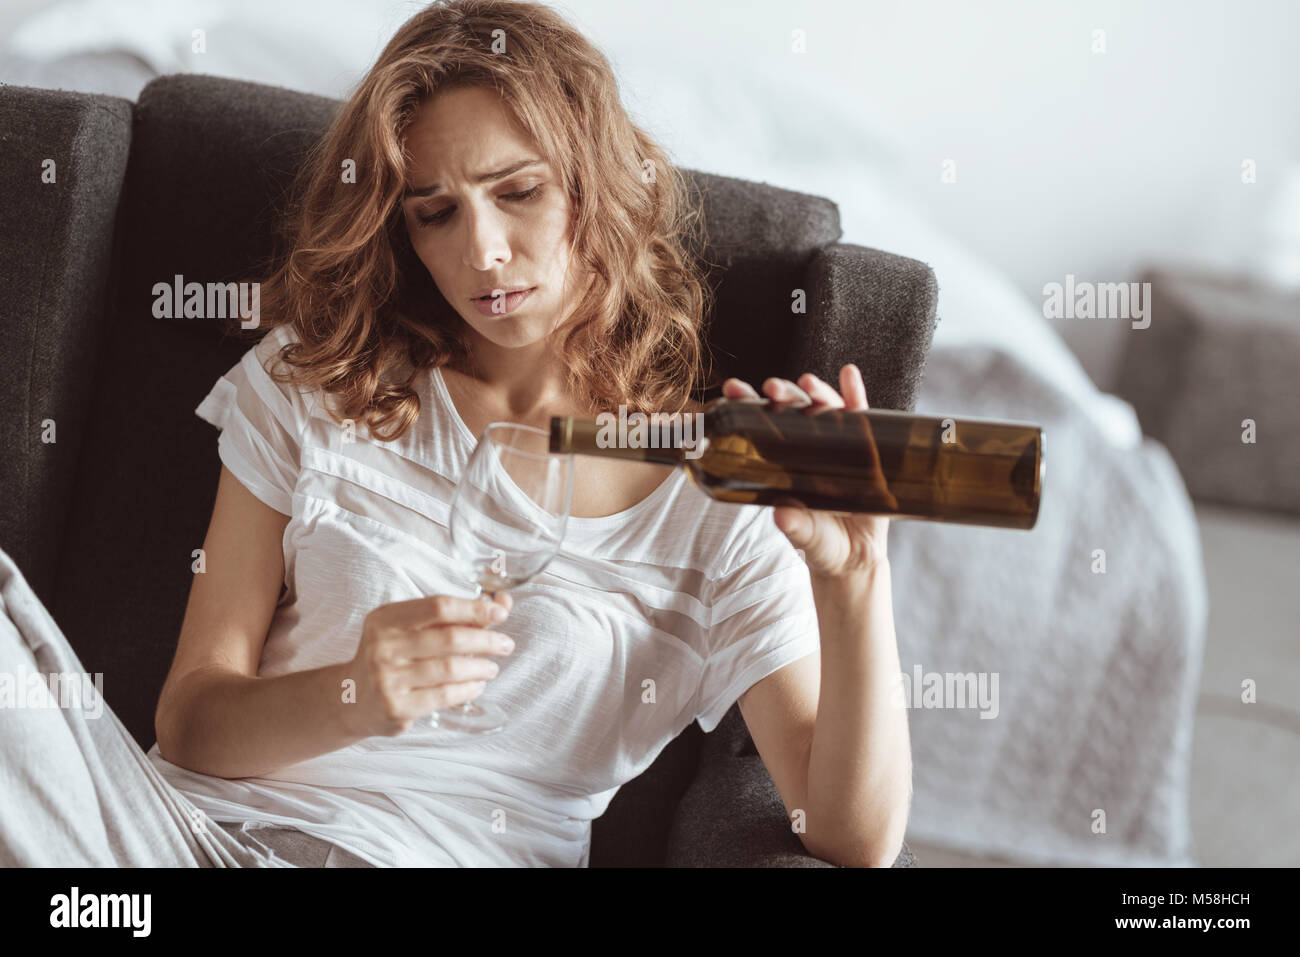 Stressed woman pouring wine at home - Stock Image